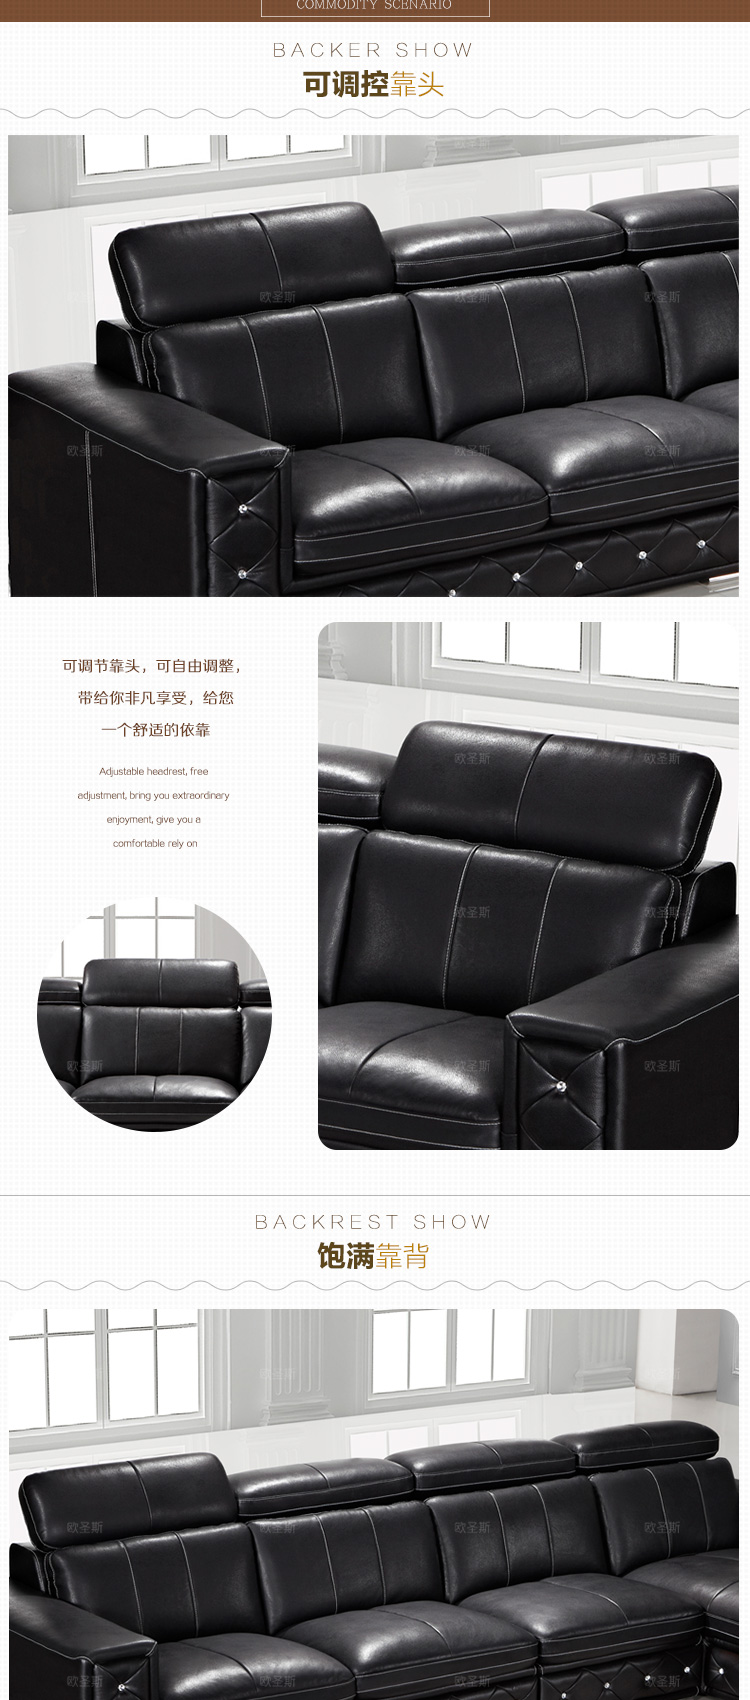 Sofa Set Online Us 950 Buy Sofa Set Online Latest Sofa Designs 2016 Black L Shaped Modern Corner Leather Sofa Germany With Adjustable Backrest Sofa F36 In Living